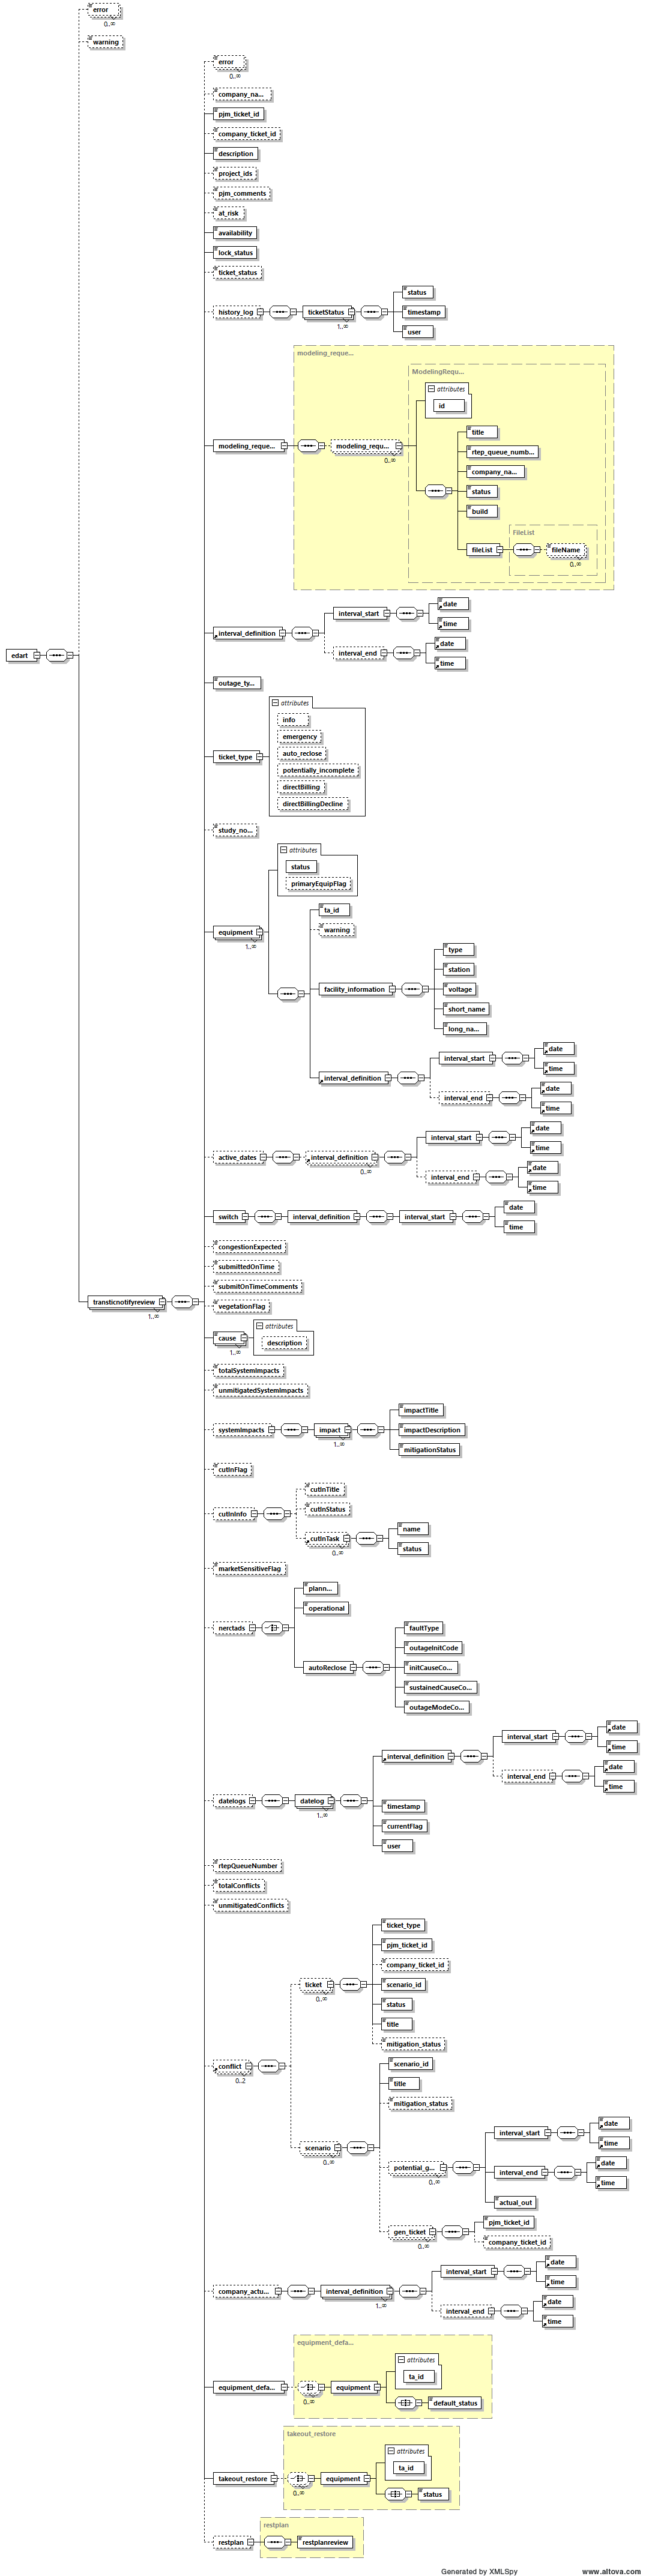 Transticnotifyreviewg schema diagram ccuart Images